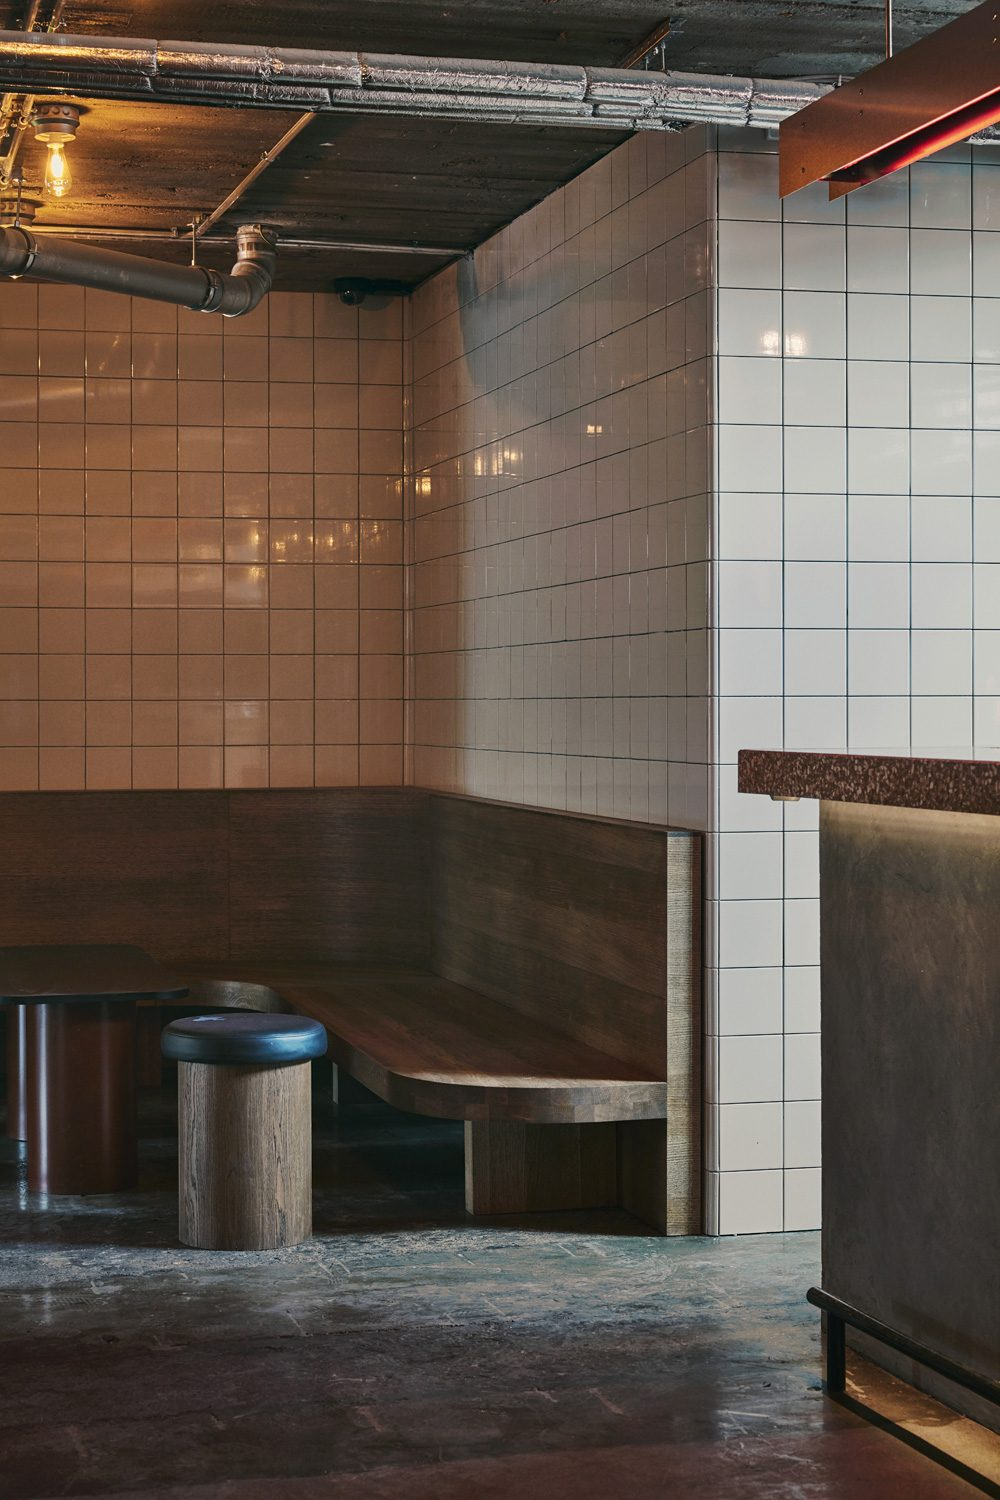 Interior of Post Bar in Finland with pink square tiles and grey grouting